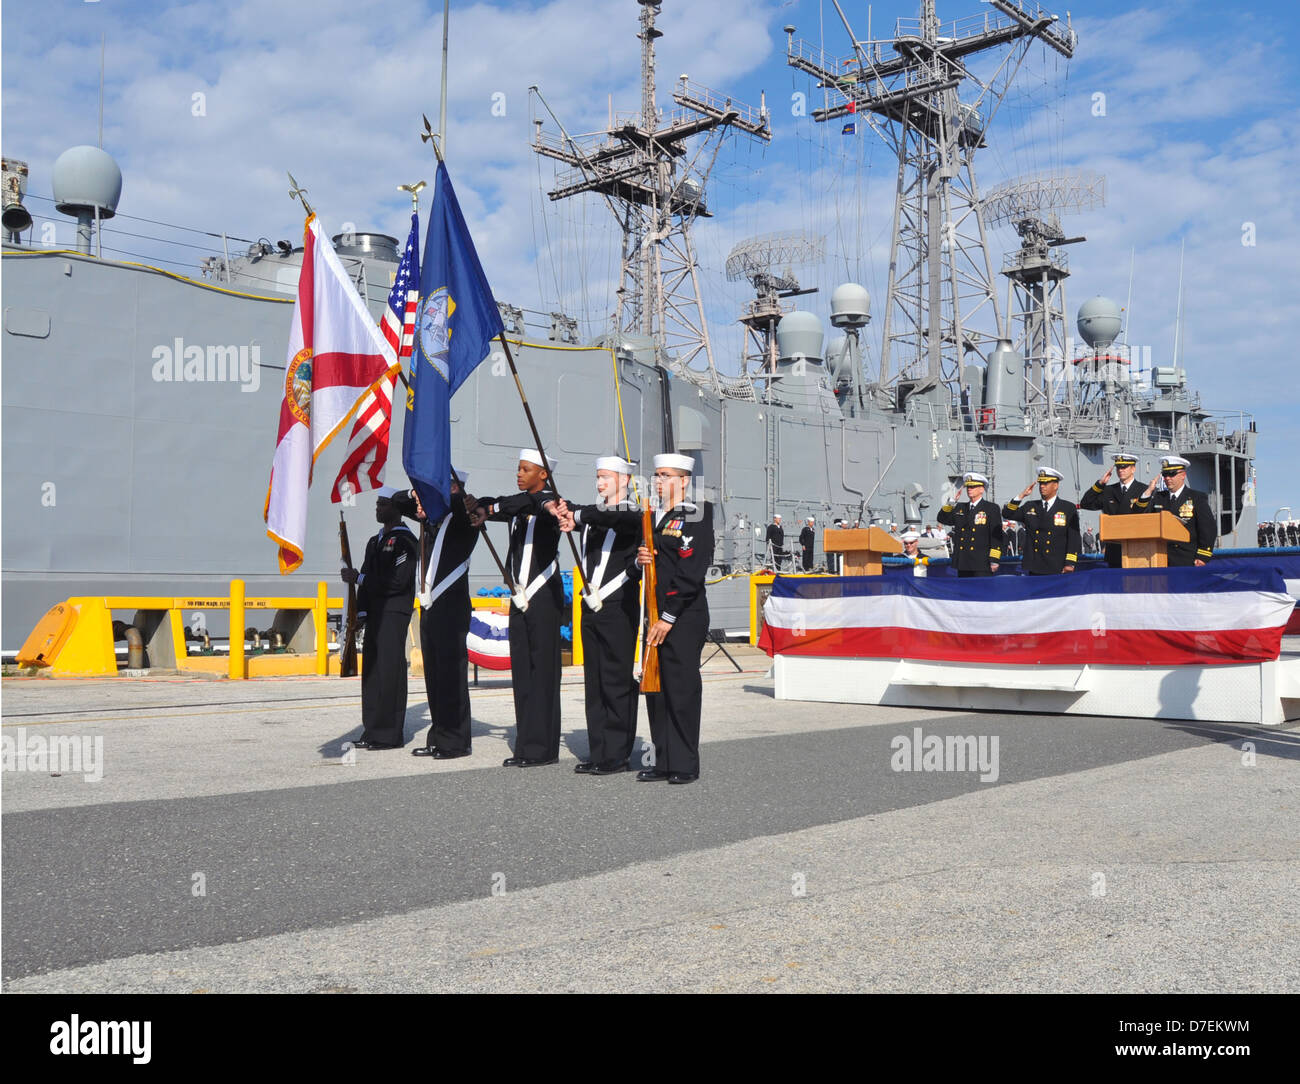 Sailors present colors at the decommissioning of USS Klakring. - Stock Image